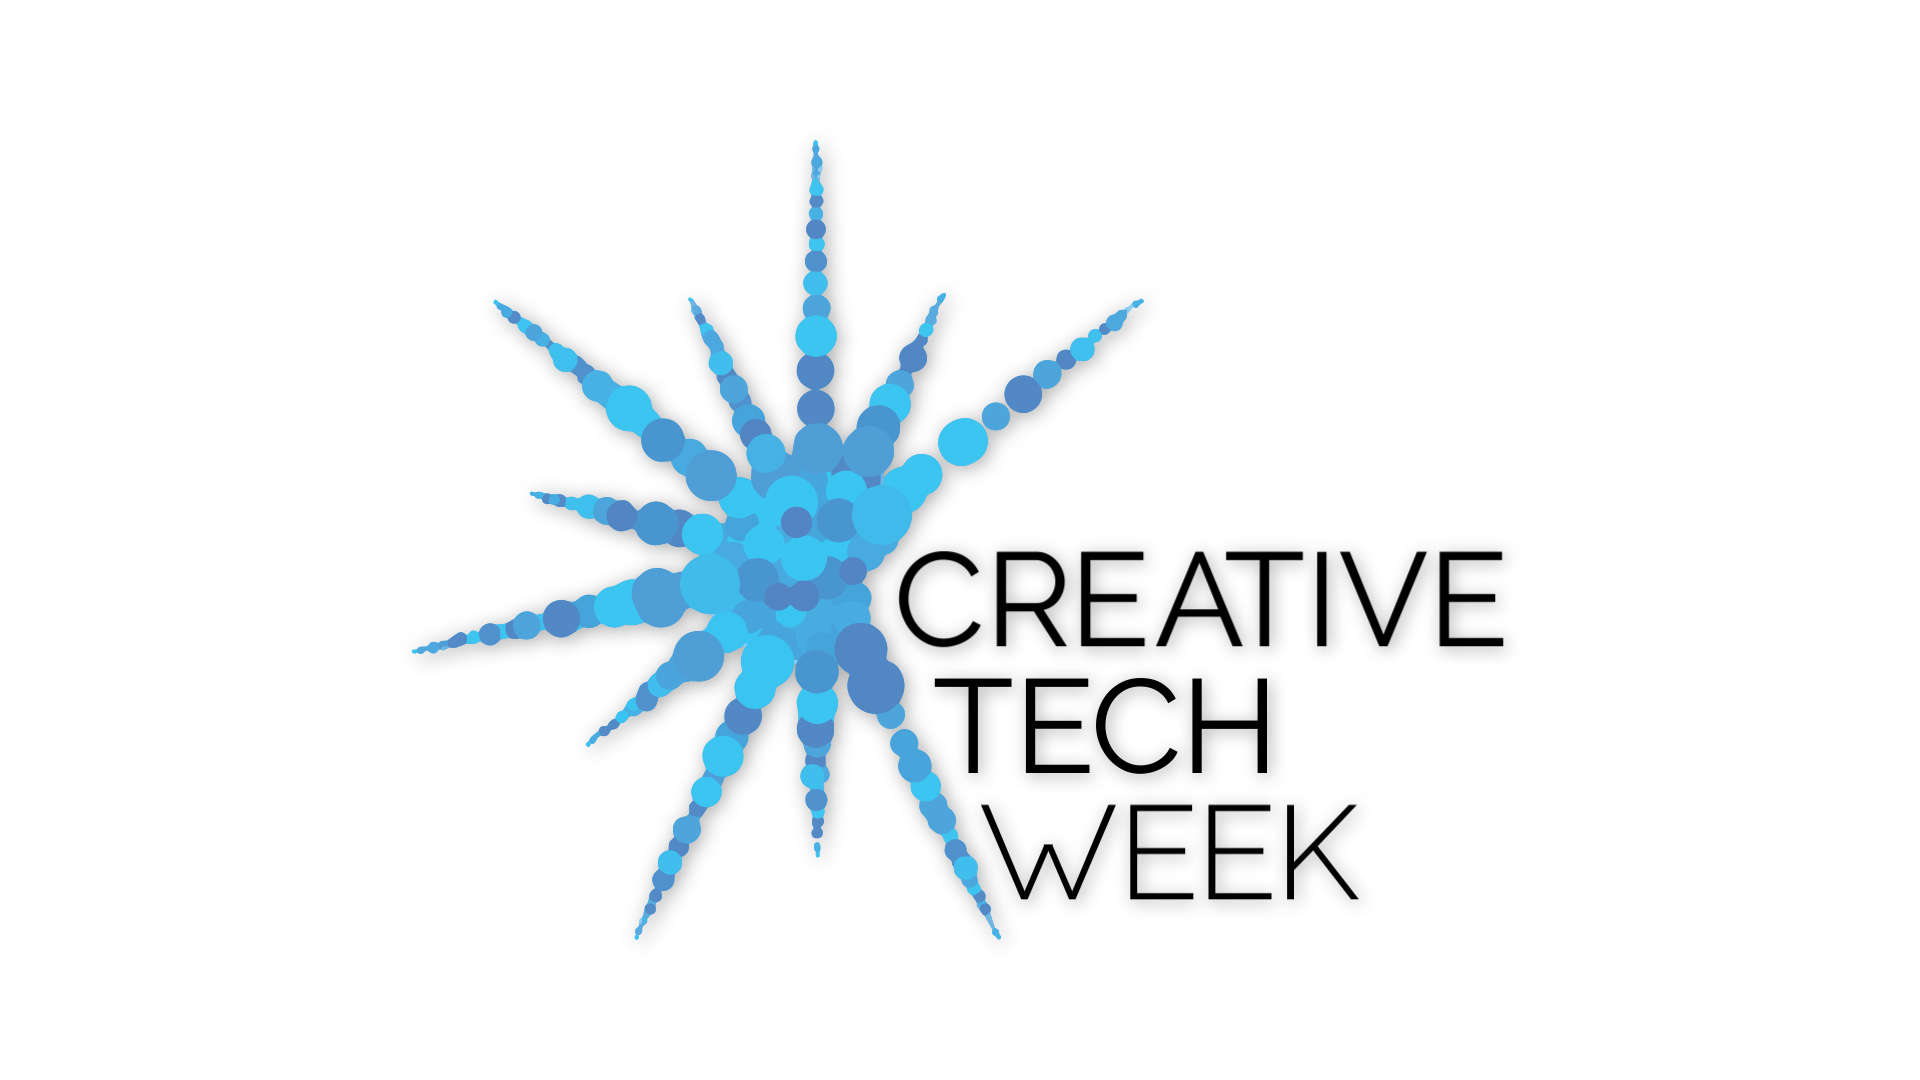 Creative Tech Week Logo Animation